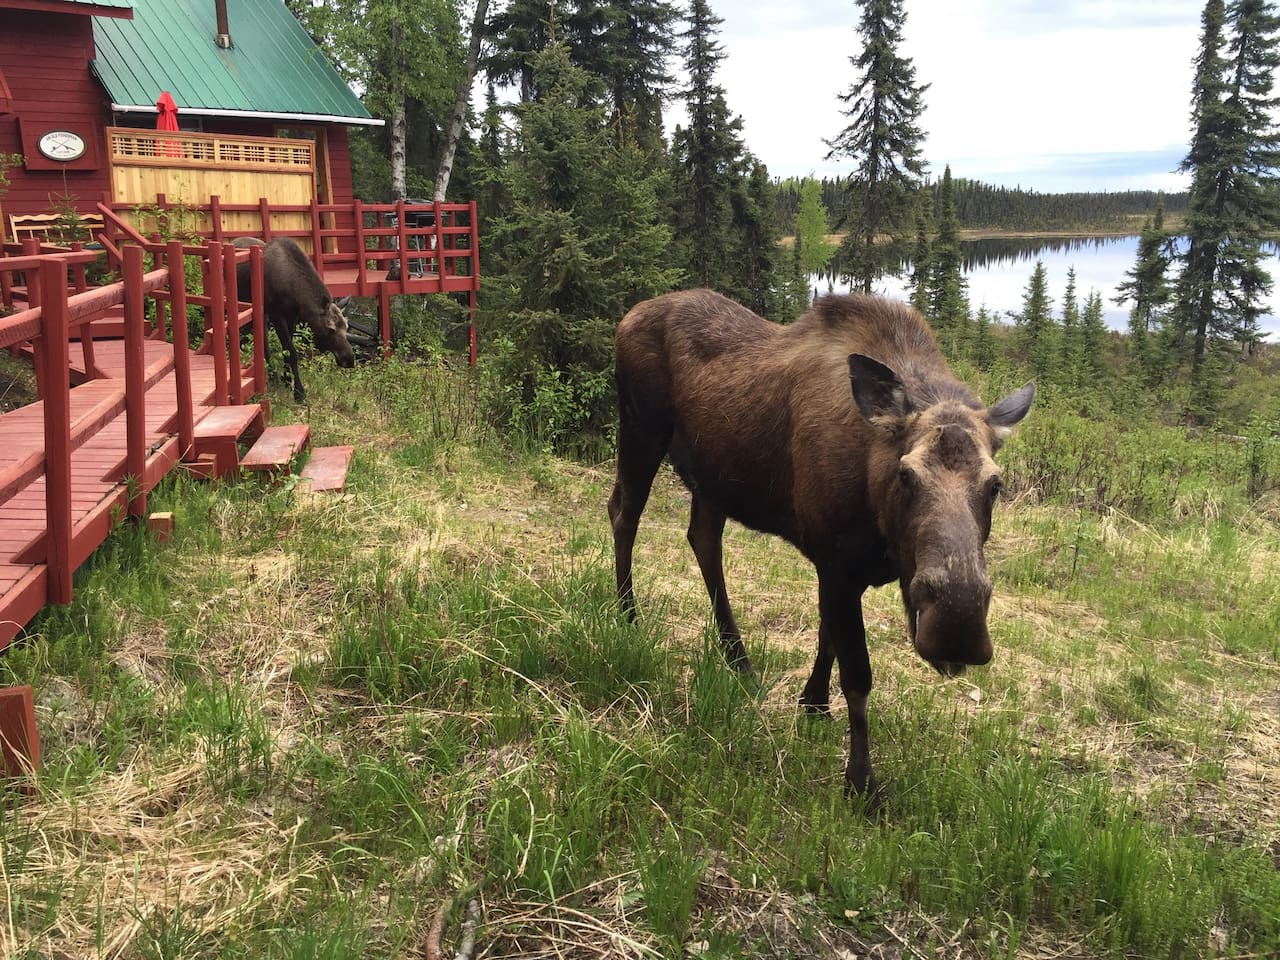 """Two furry visitors photographed by the cottage. Welcome to """"A Walden's Pond"""" in Soldotna, Alaska!"""